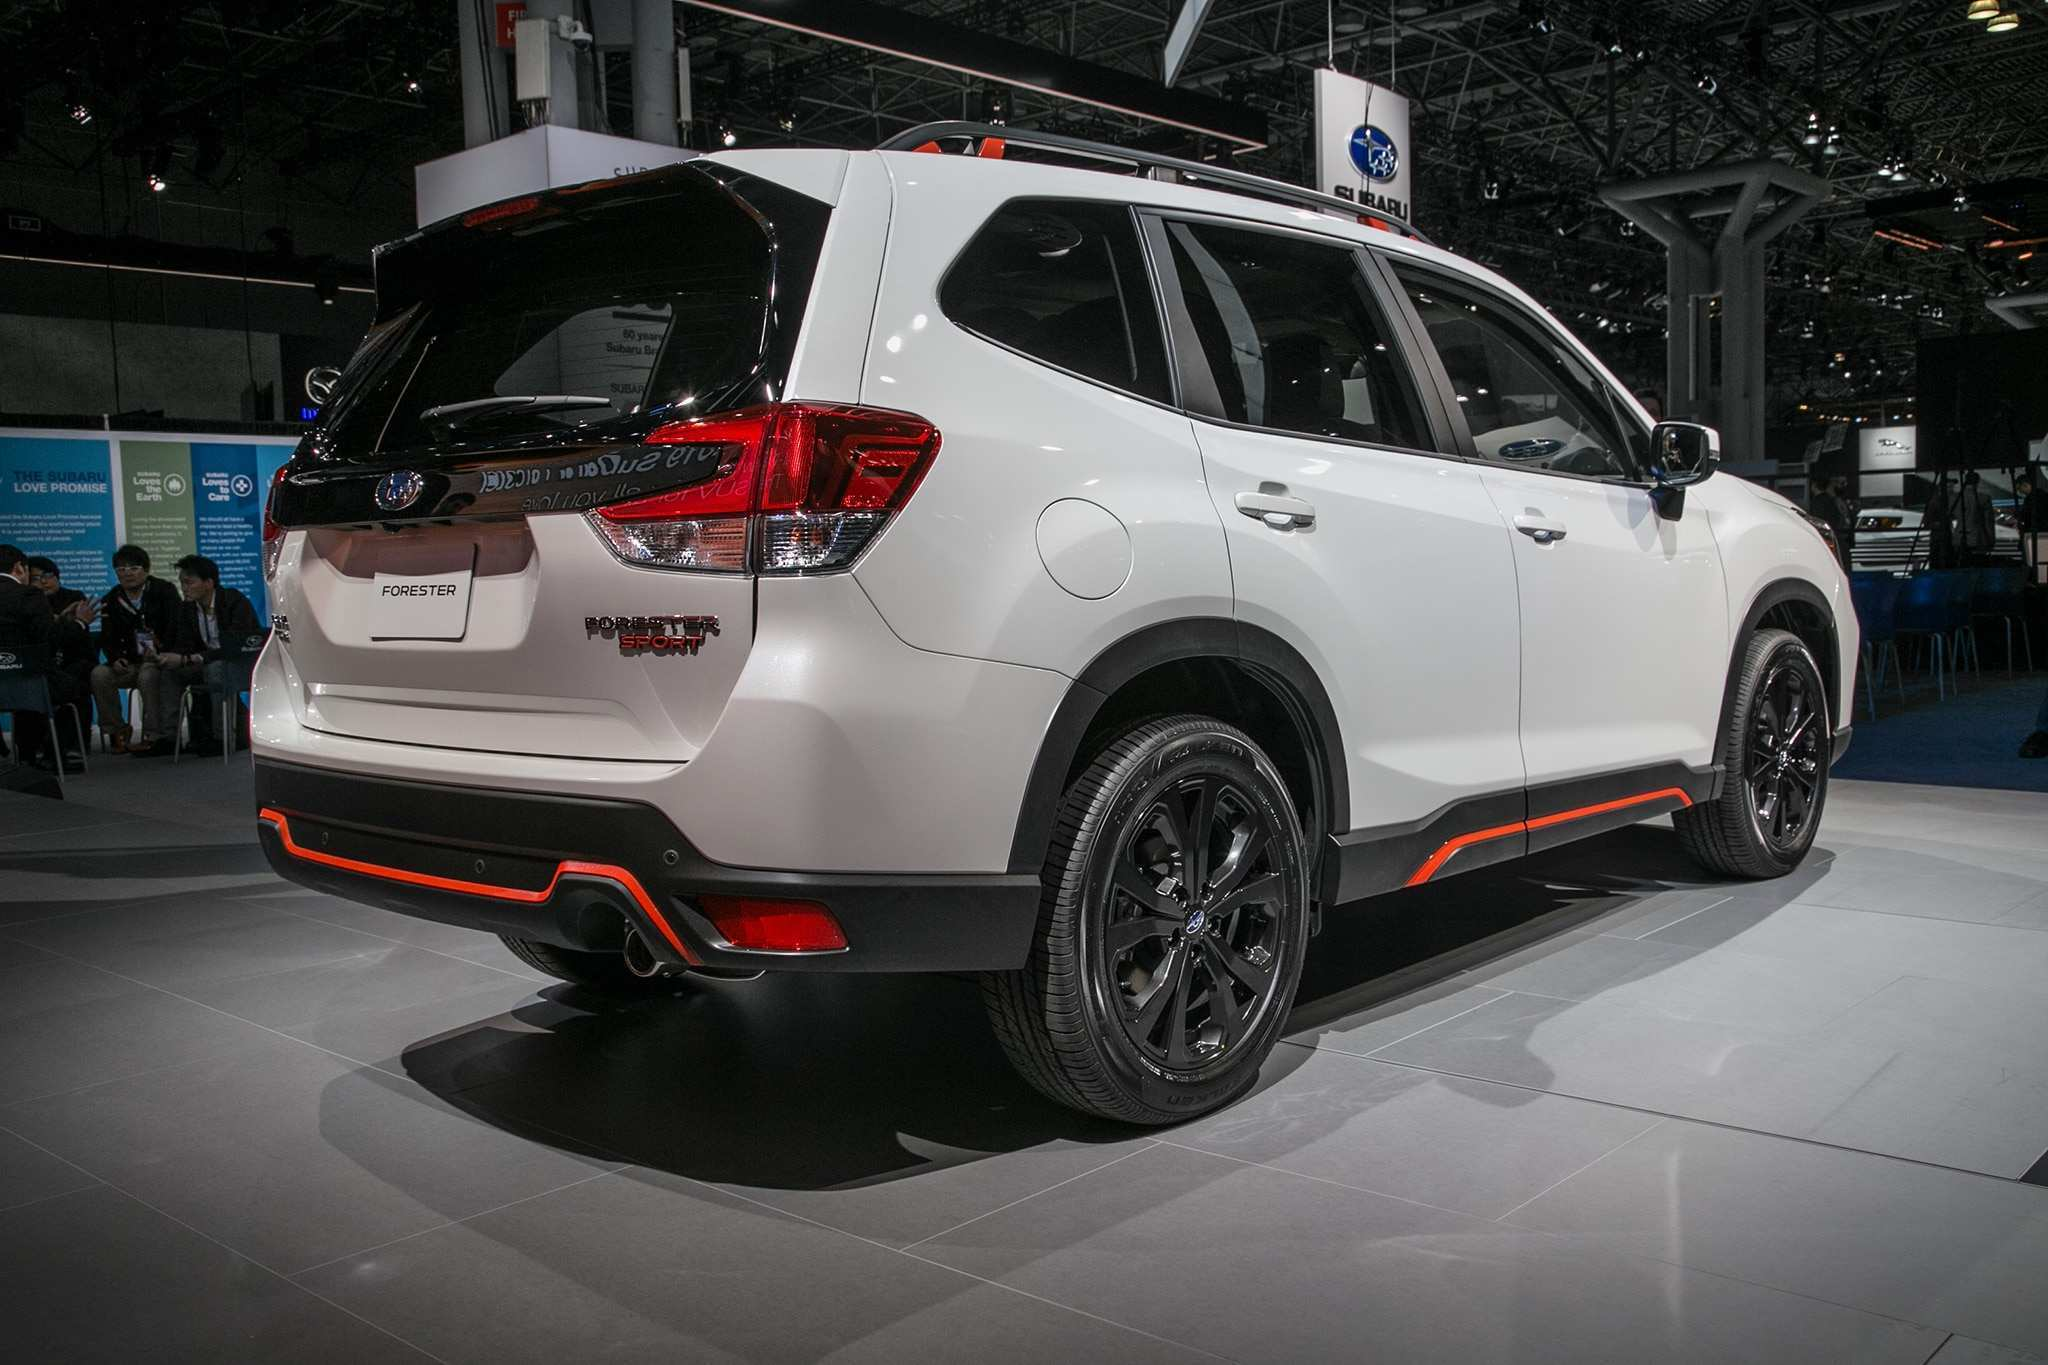 88 Concept of Subaru Forester 2019 Ground Clearance Rumors Exterior with Subaru Forester 2019 Ground Clearance Rumors